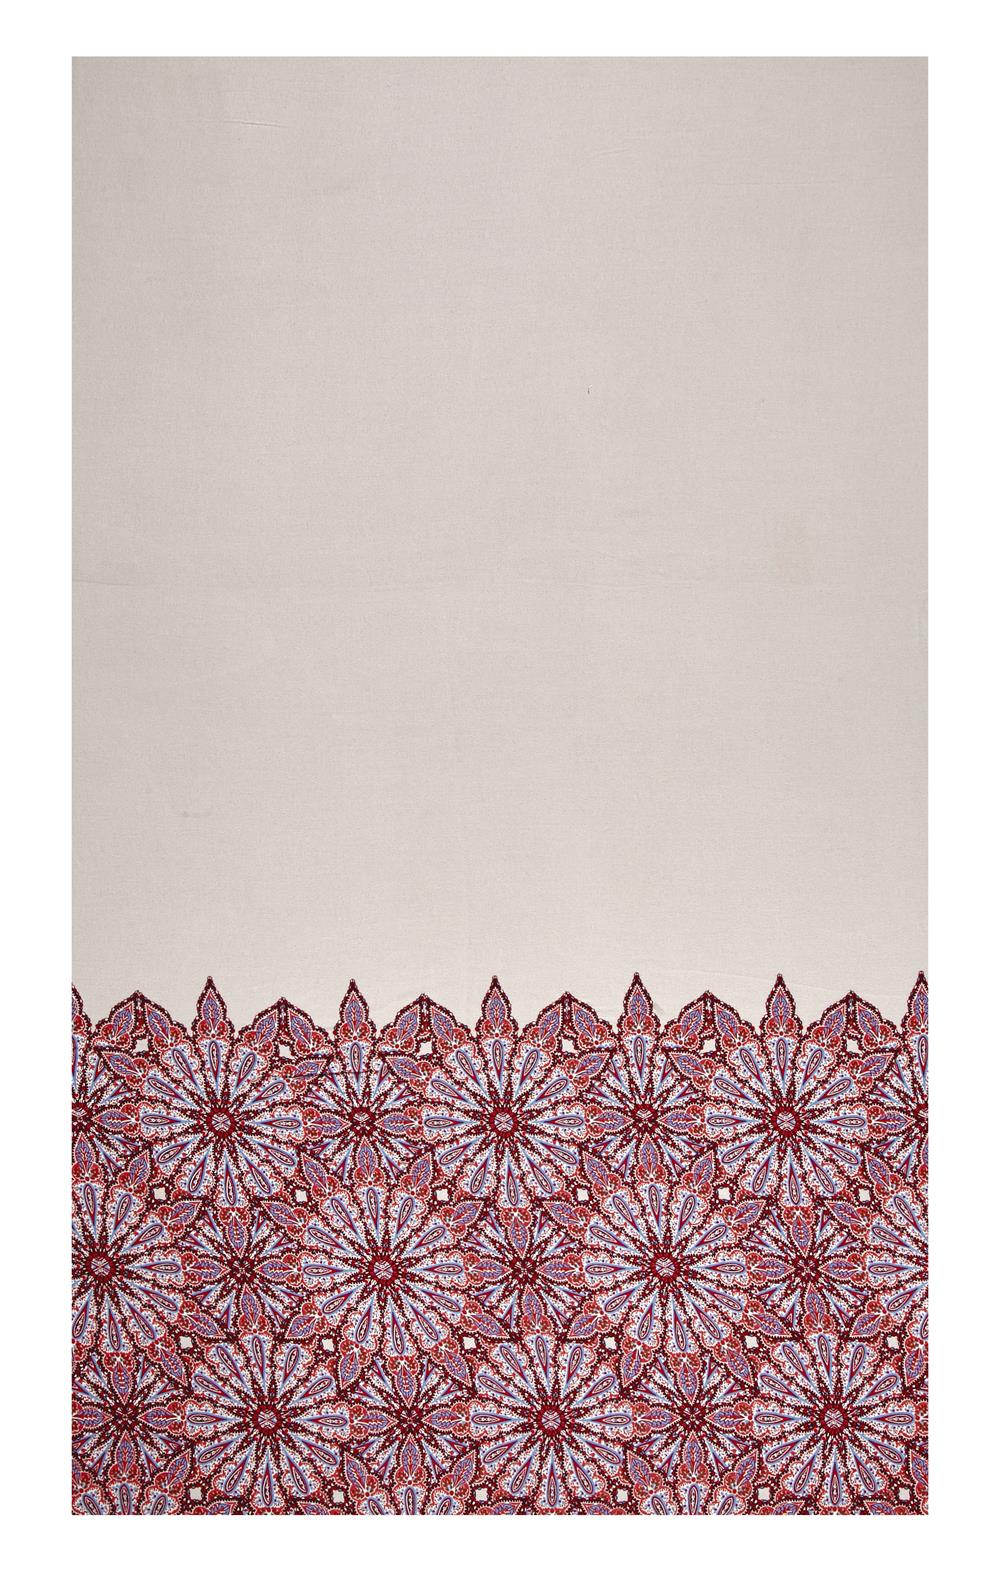 Rayon Crepe Floral  Border Taupe/Burgundy/Blue Fabric